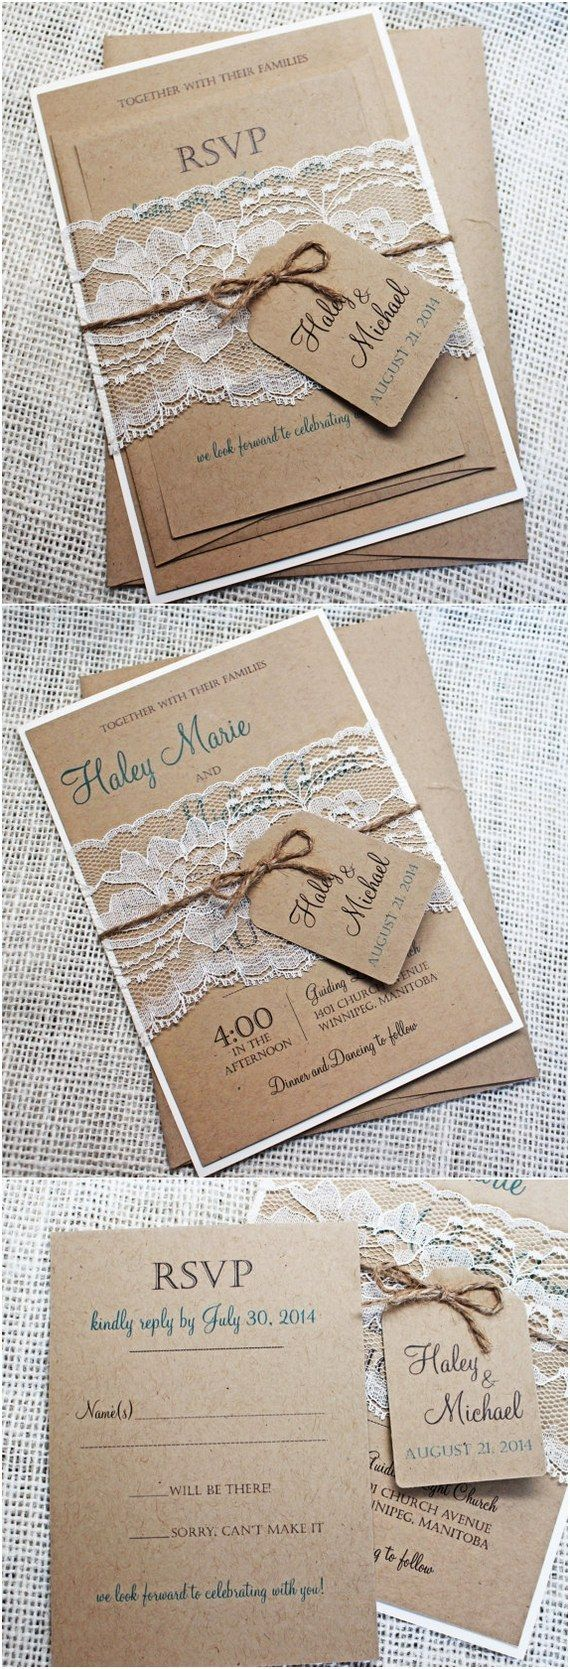 15 rustic wedding invitations from etsy - Burlap Wedding Invitations